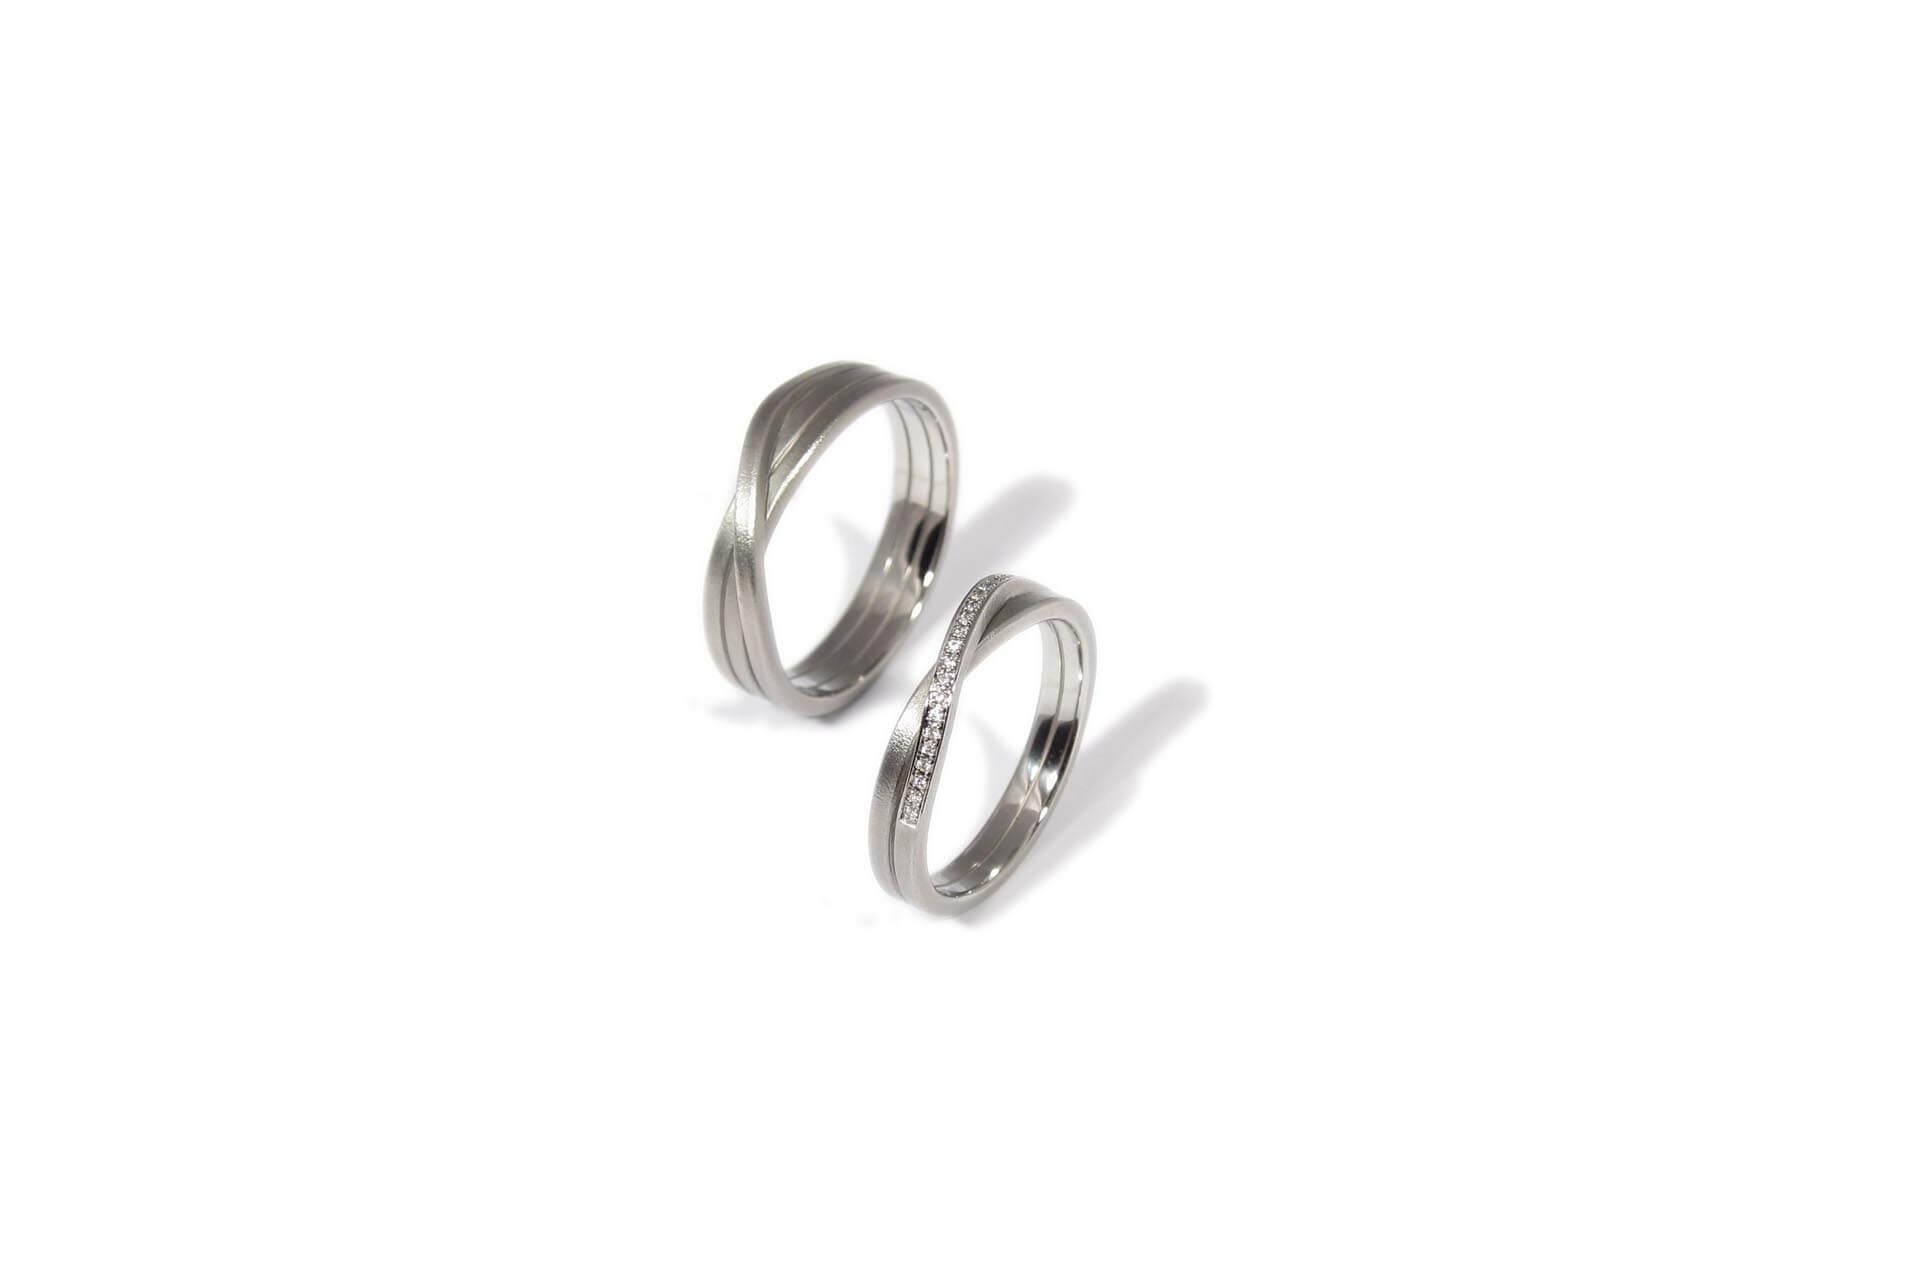 Oliver Schmidt stainless steel knot rings with the woman's band featuring a row of white diamonds.